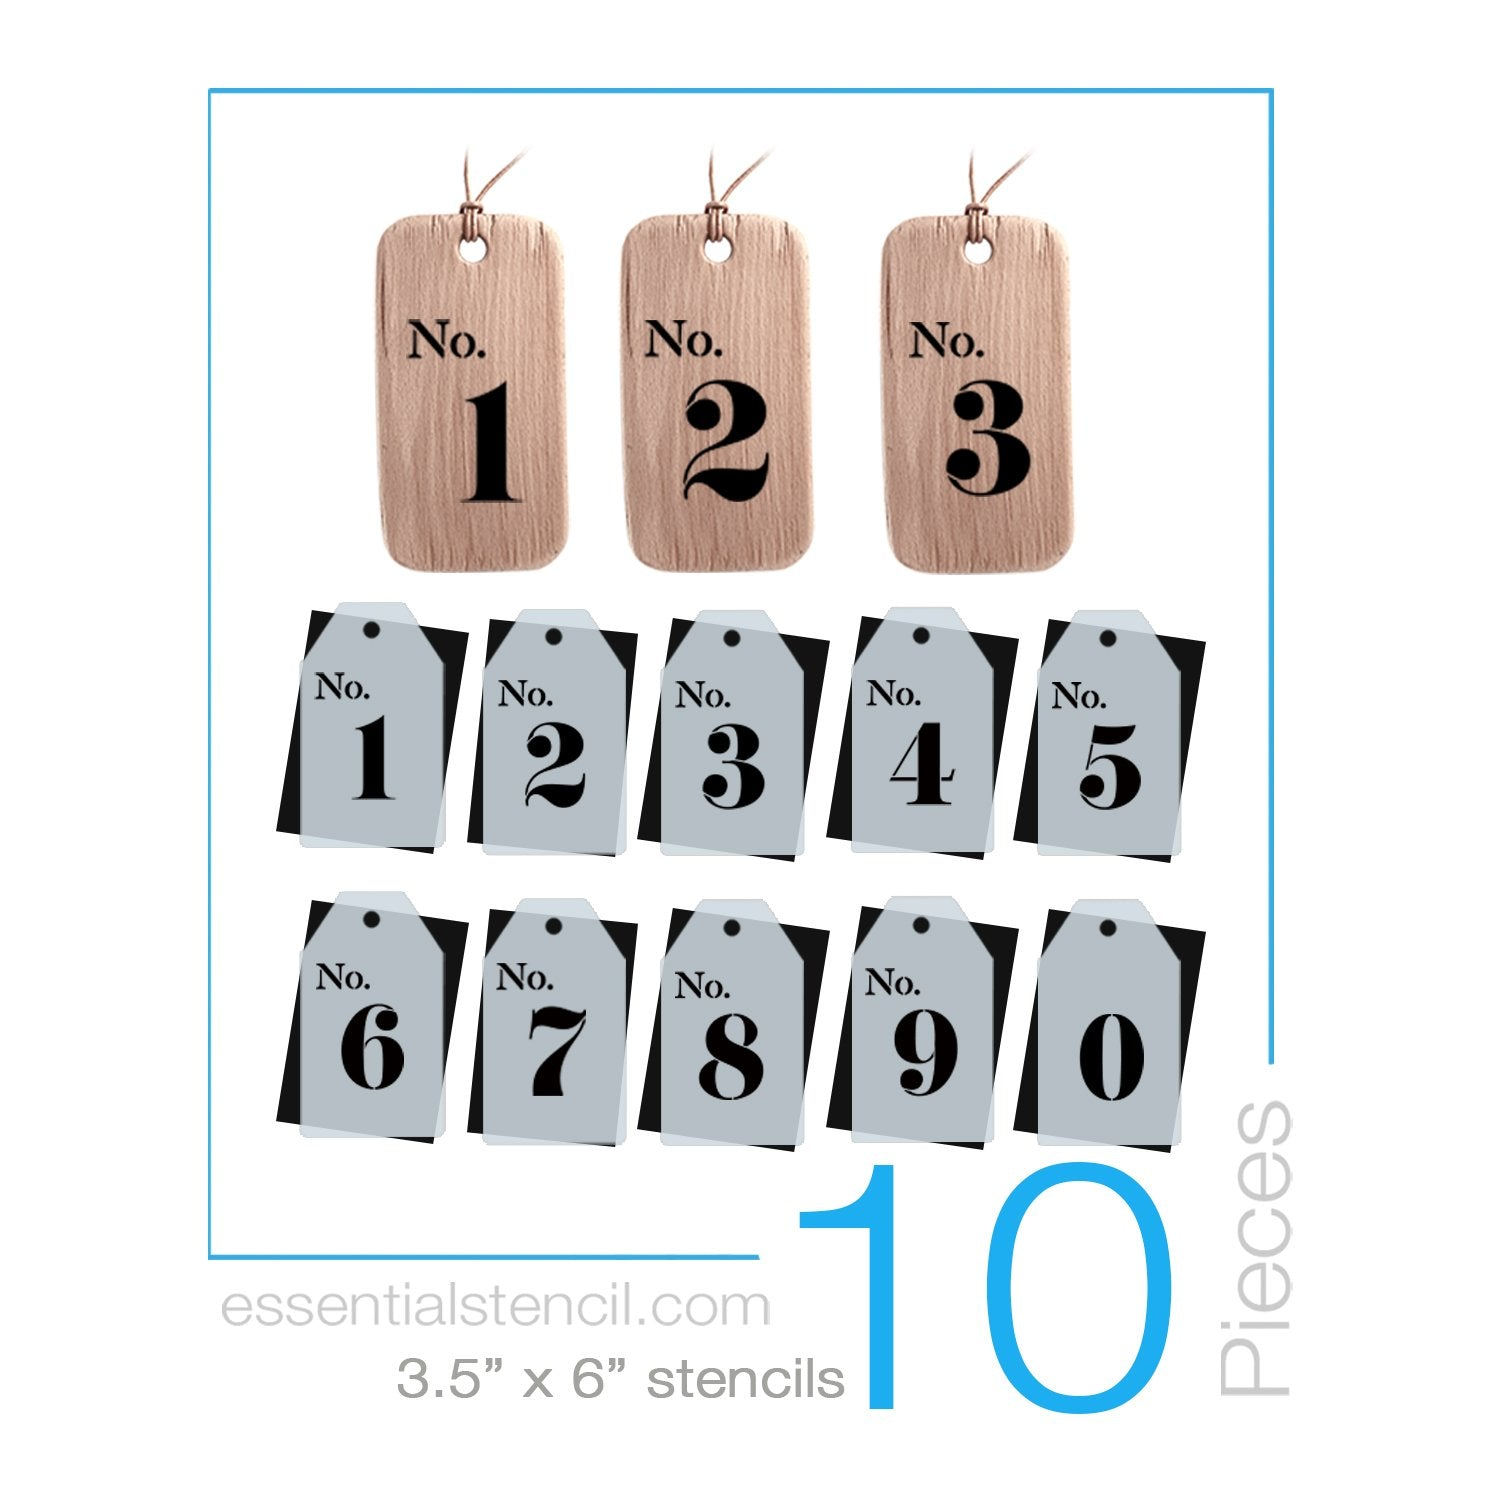 DIY reusable number tag stencils, Wedding No.1 No. 2 No. 3 No. 4 No. 5 No. 6 No. 7 No. 8 No. 9 0 reusable stencils, diy Wedding placement number card stencils